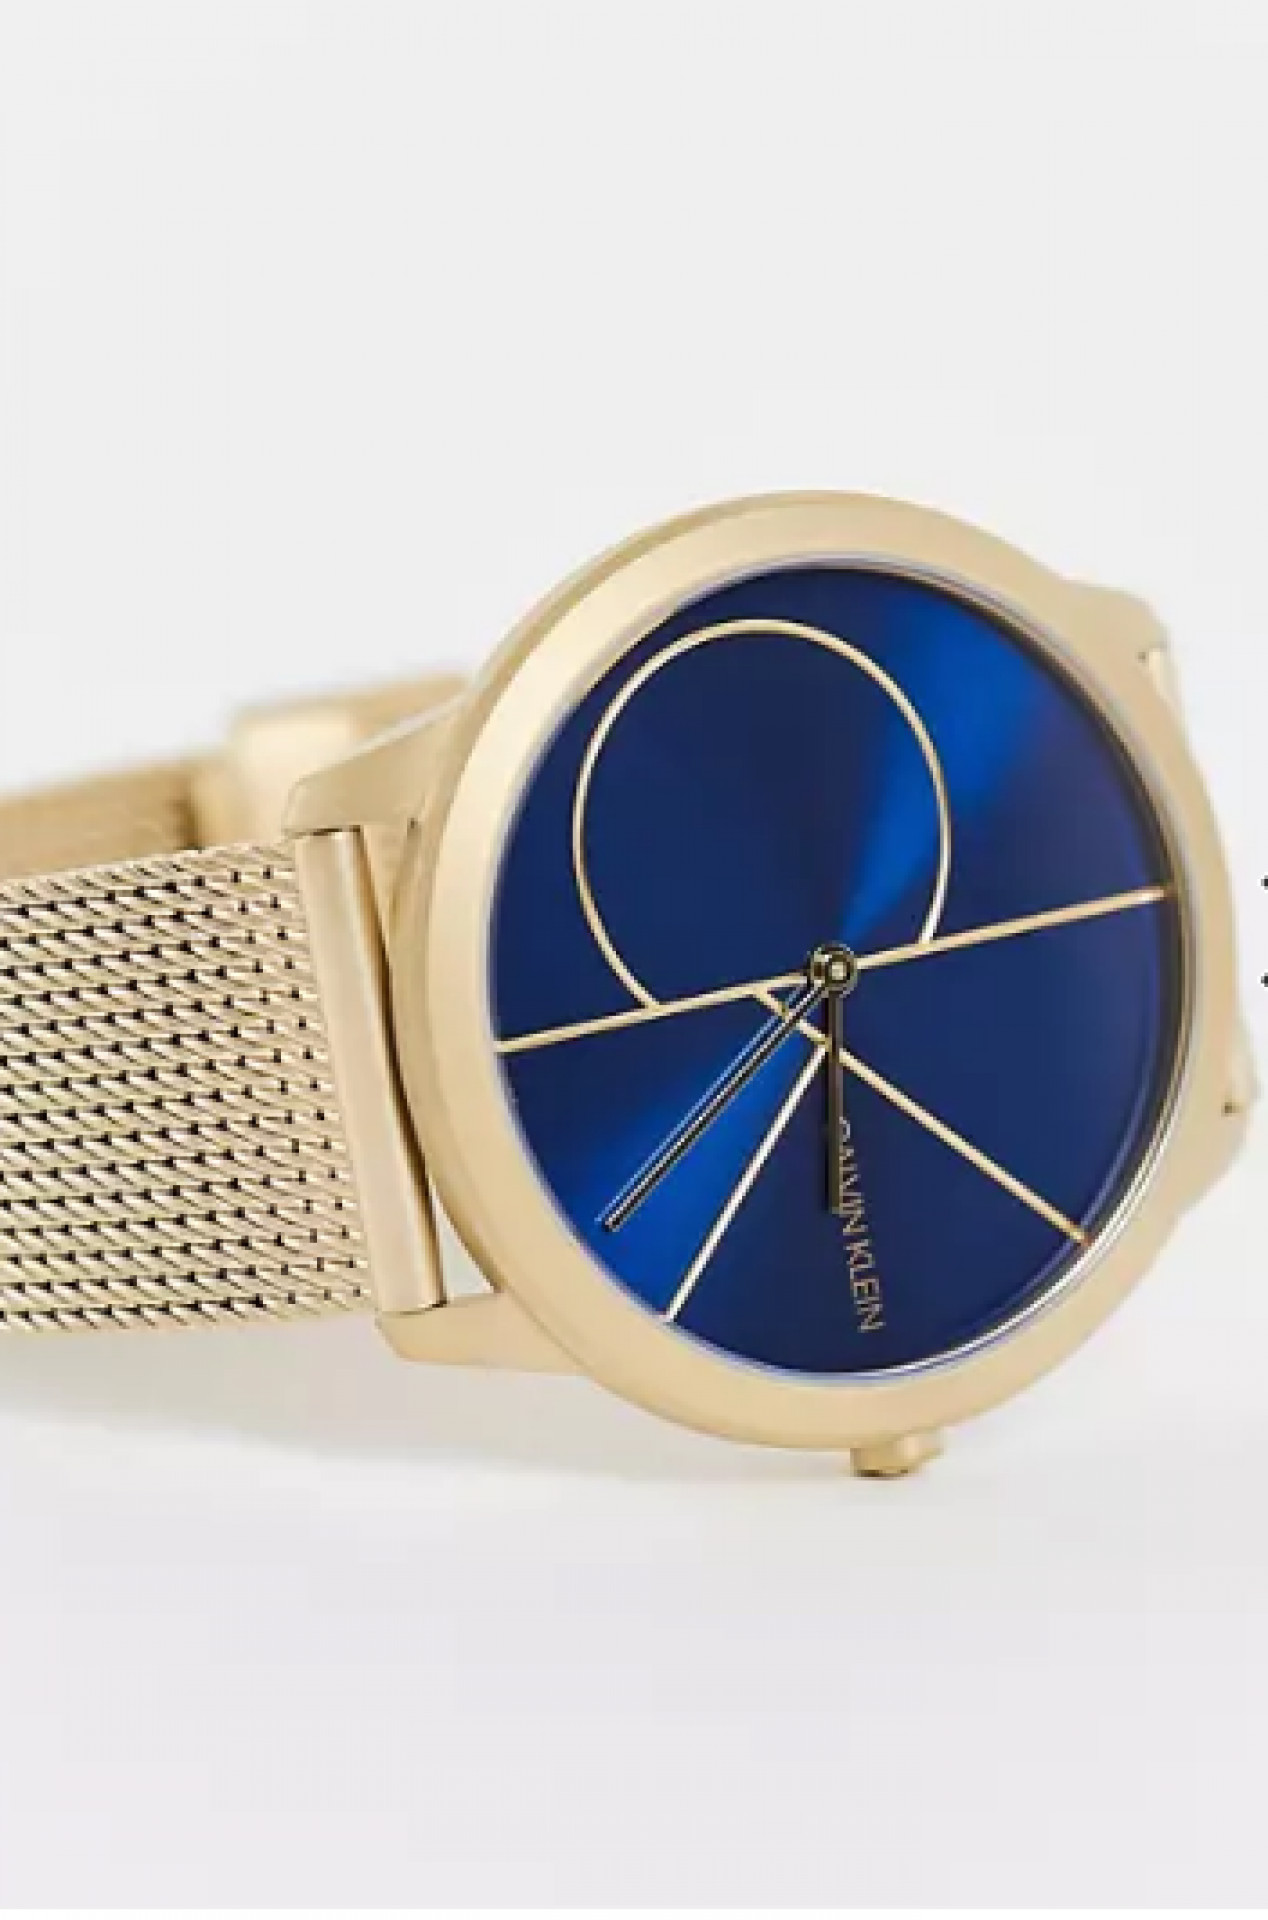 Calvin Klein gold strap watch with blue dial